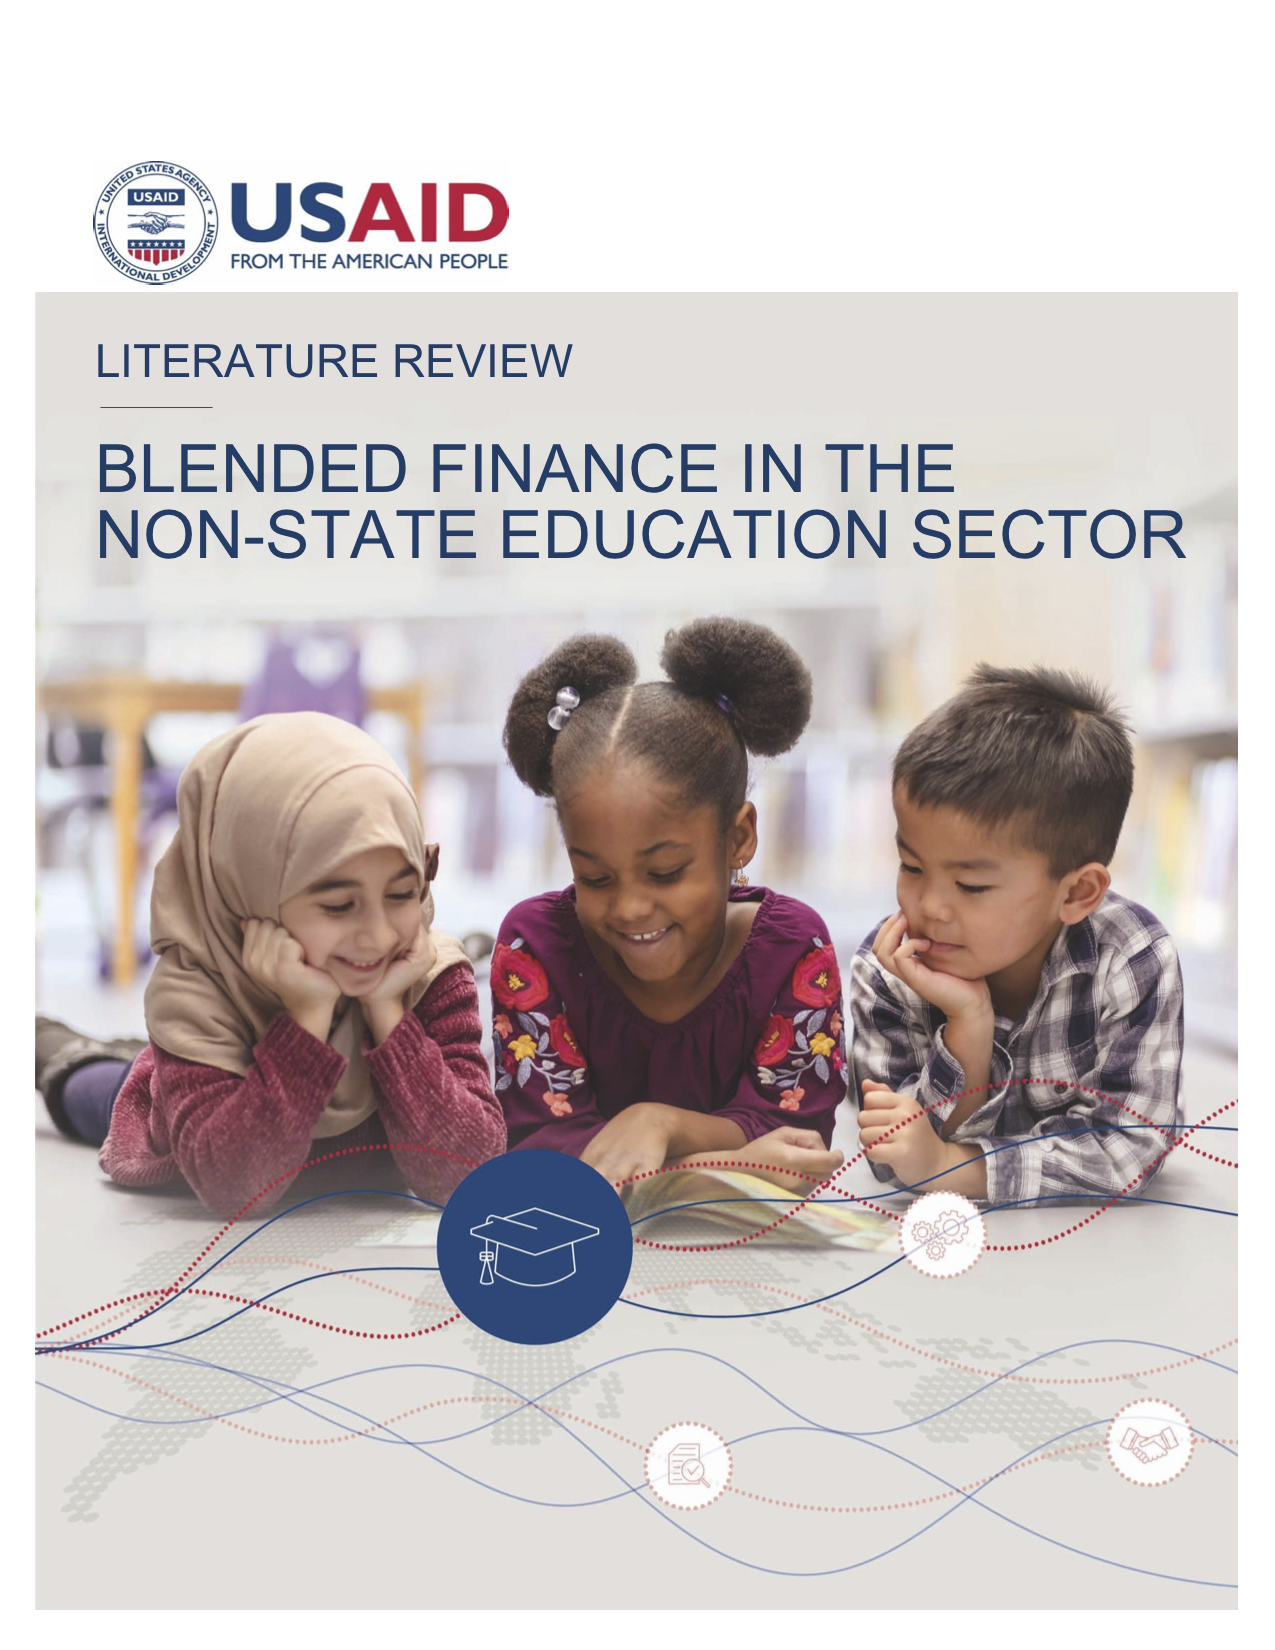 Blended Finance in the Non-State Education Sector